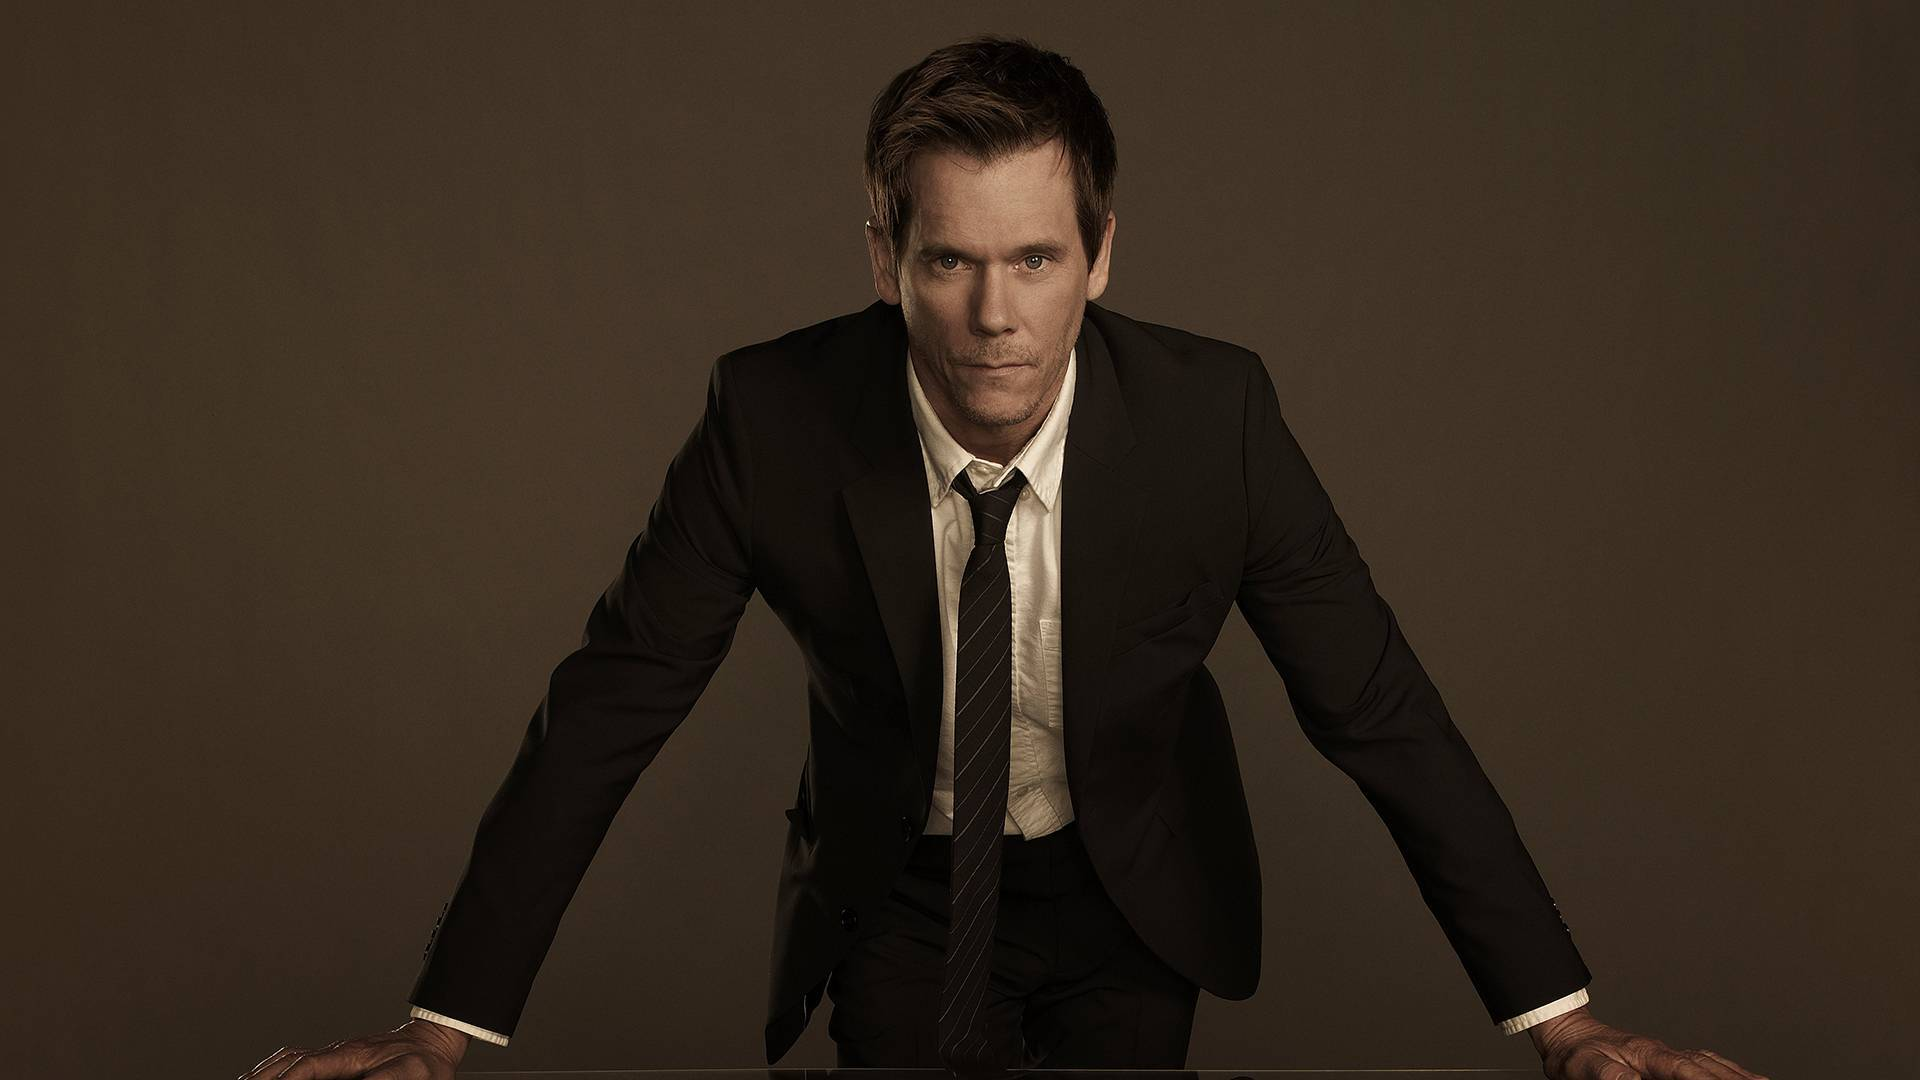 1920x1080 - Kevin Bacon Wallpapers 1